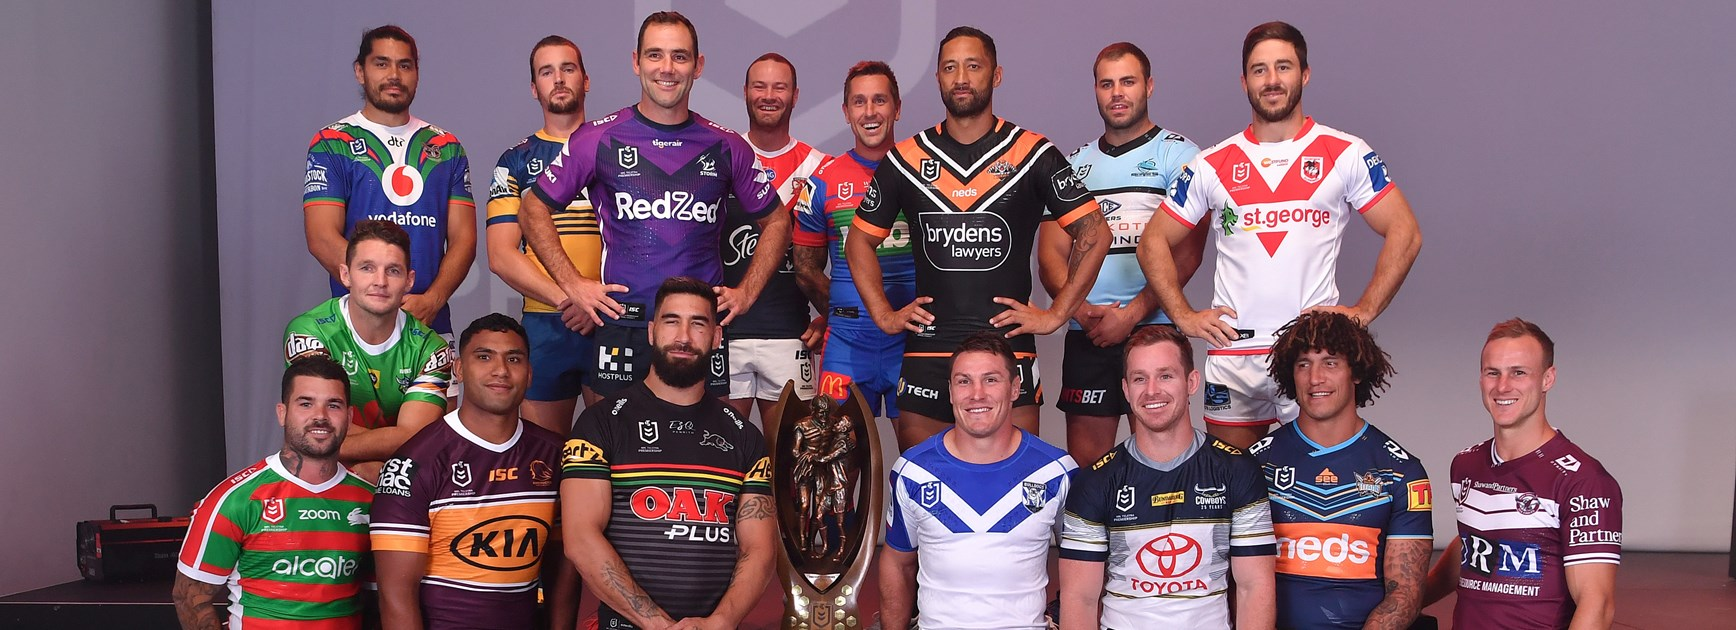 Representatives from all 16 clubs at the 2020 NRL season launch.